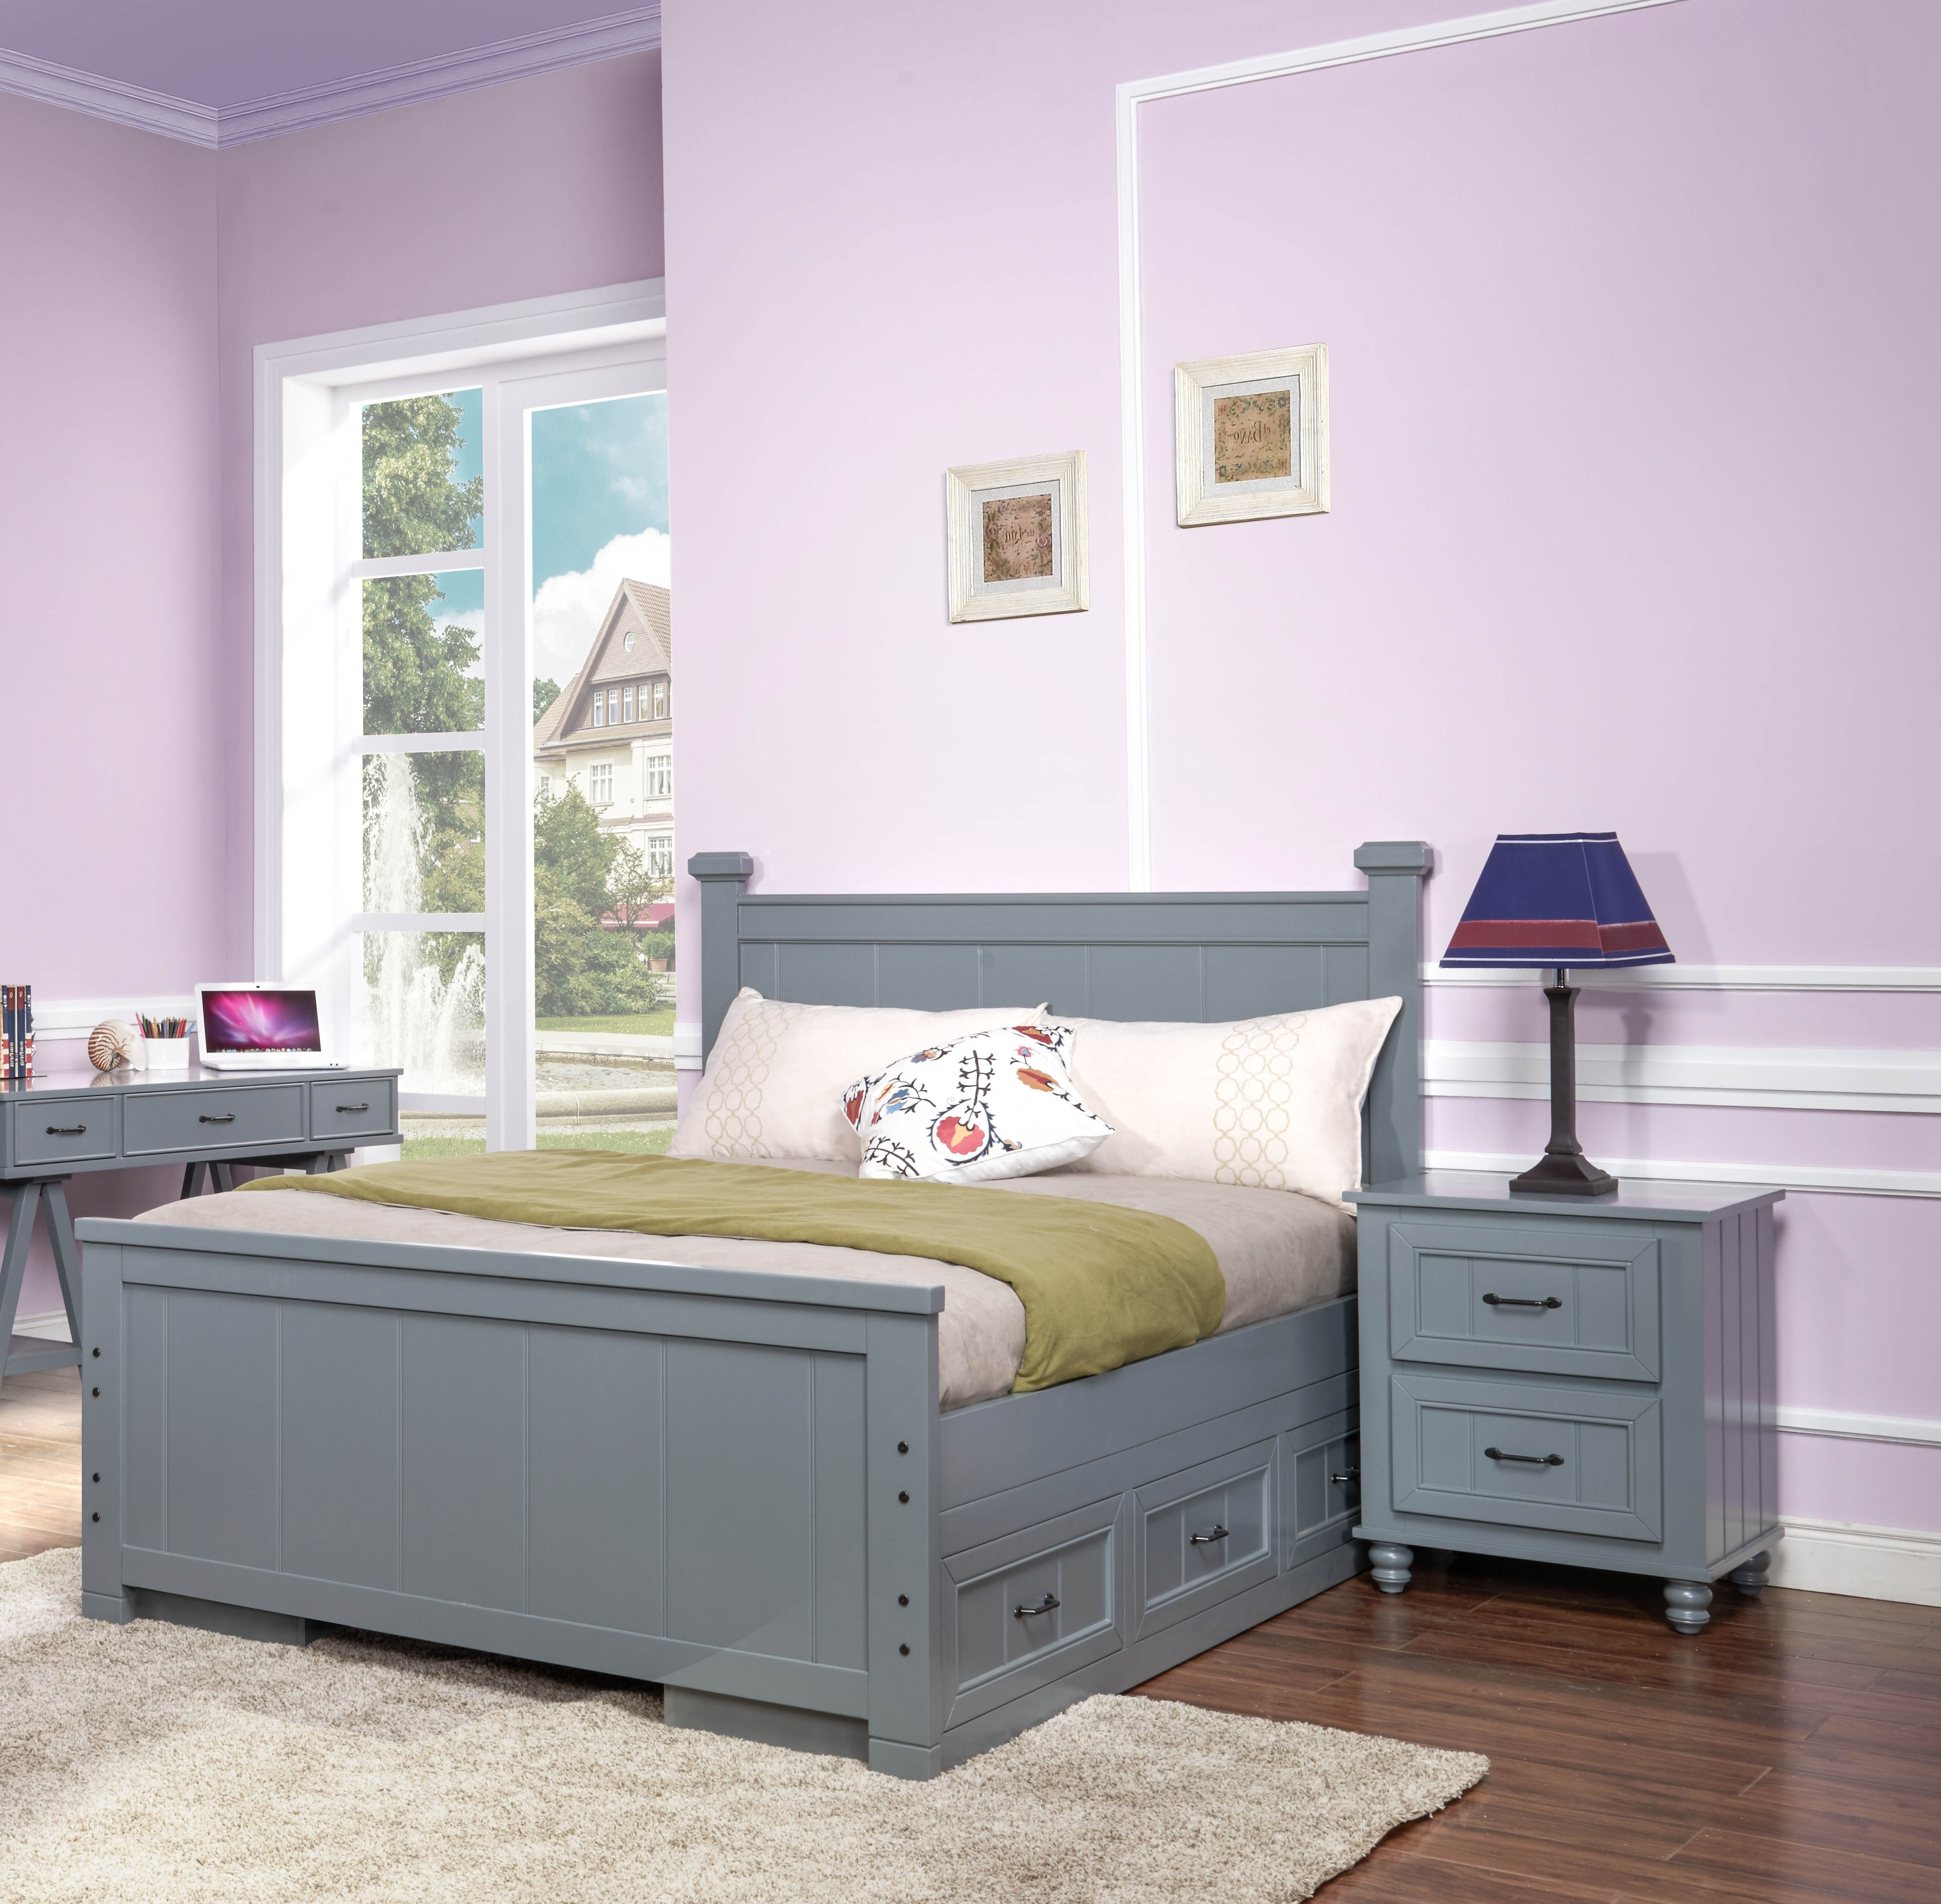 New Classic Furniture Taylor Youth Gray 2pc Bedroom Set with Full Storage  Bed